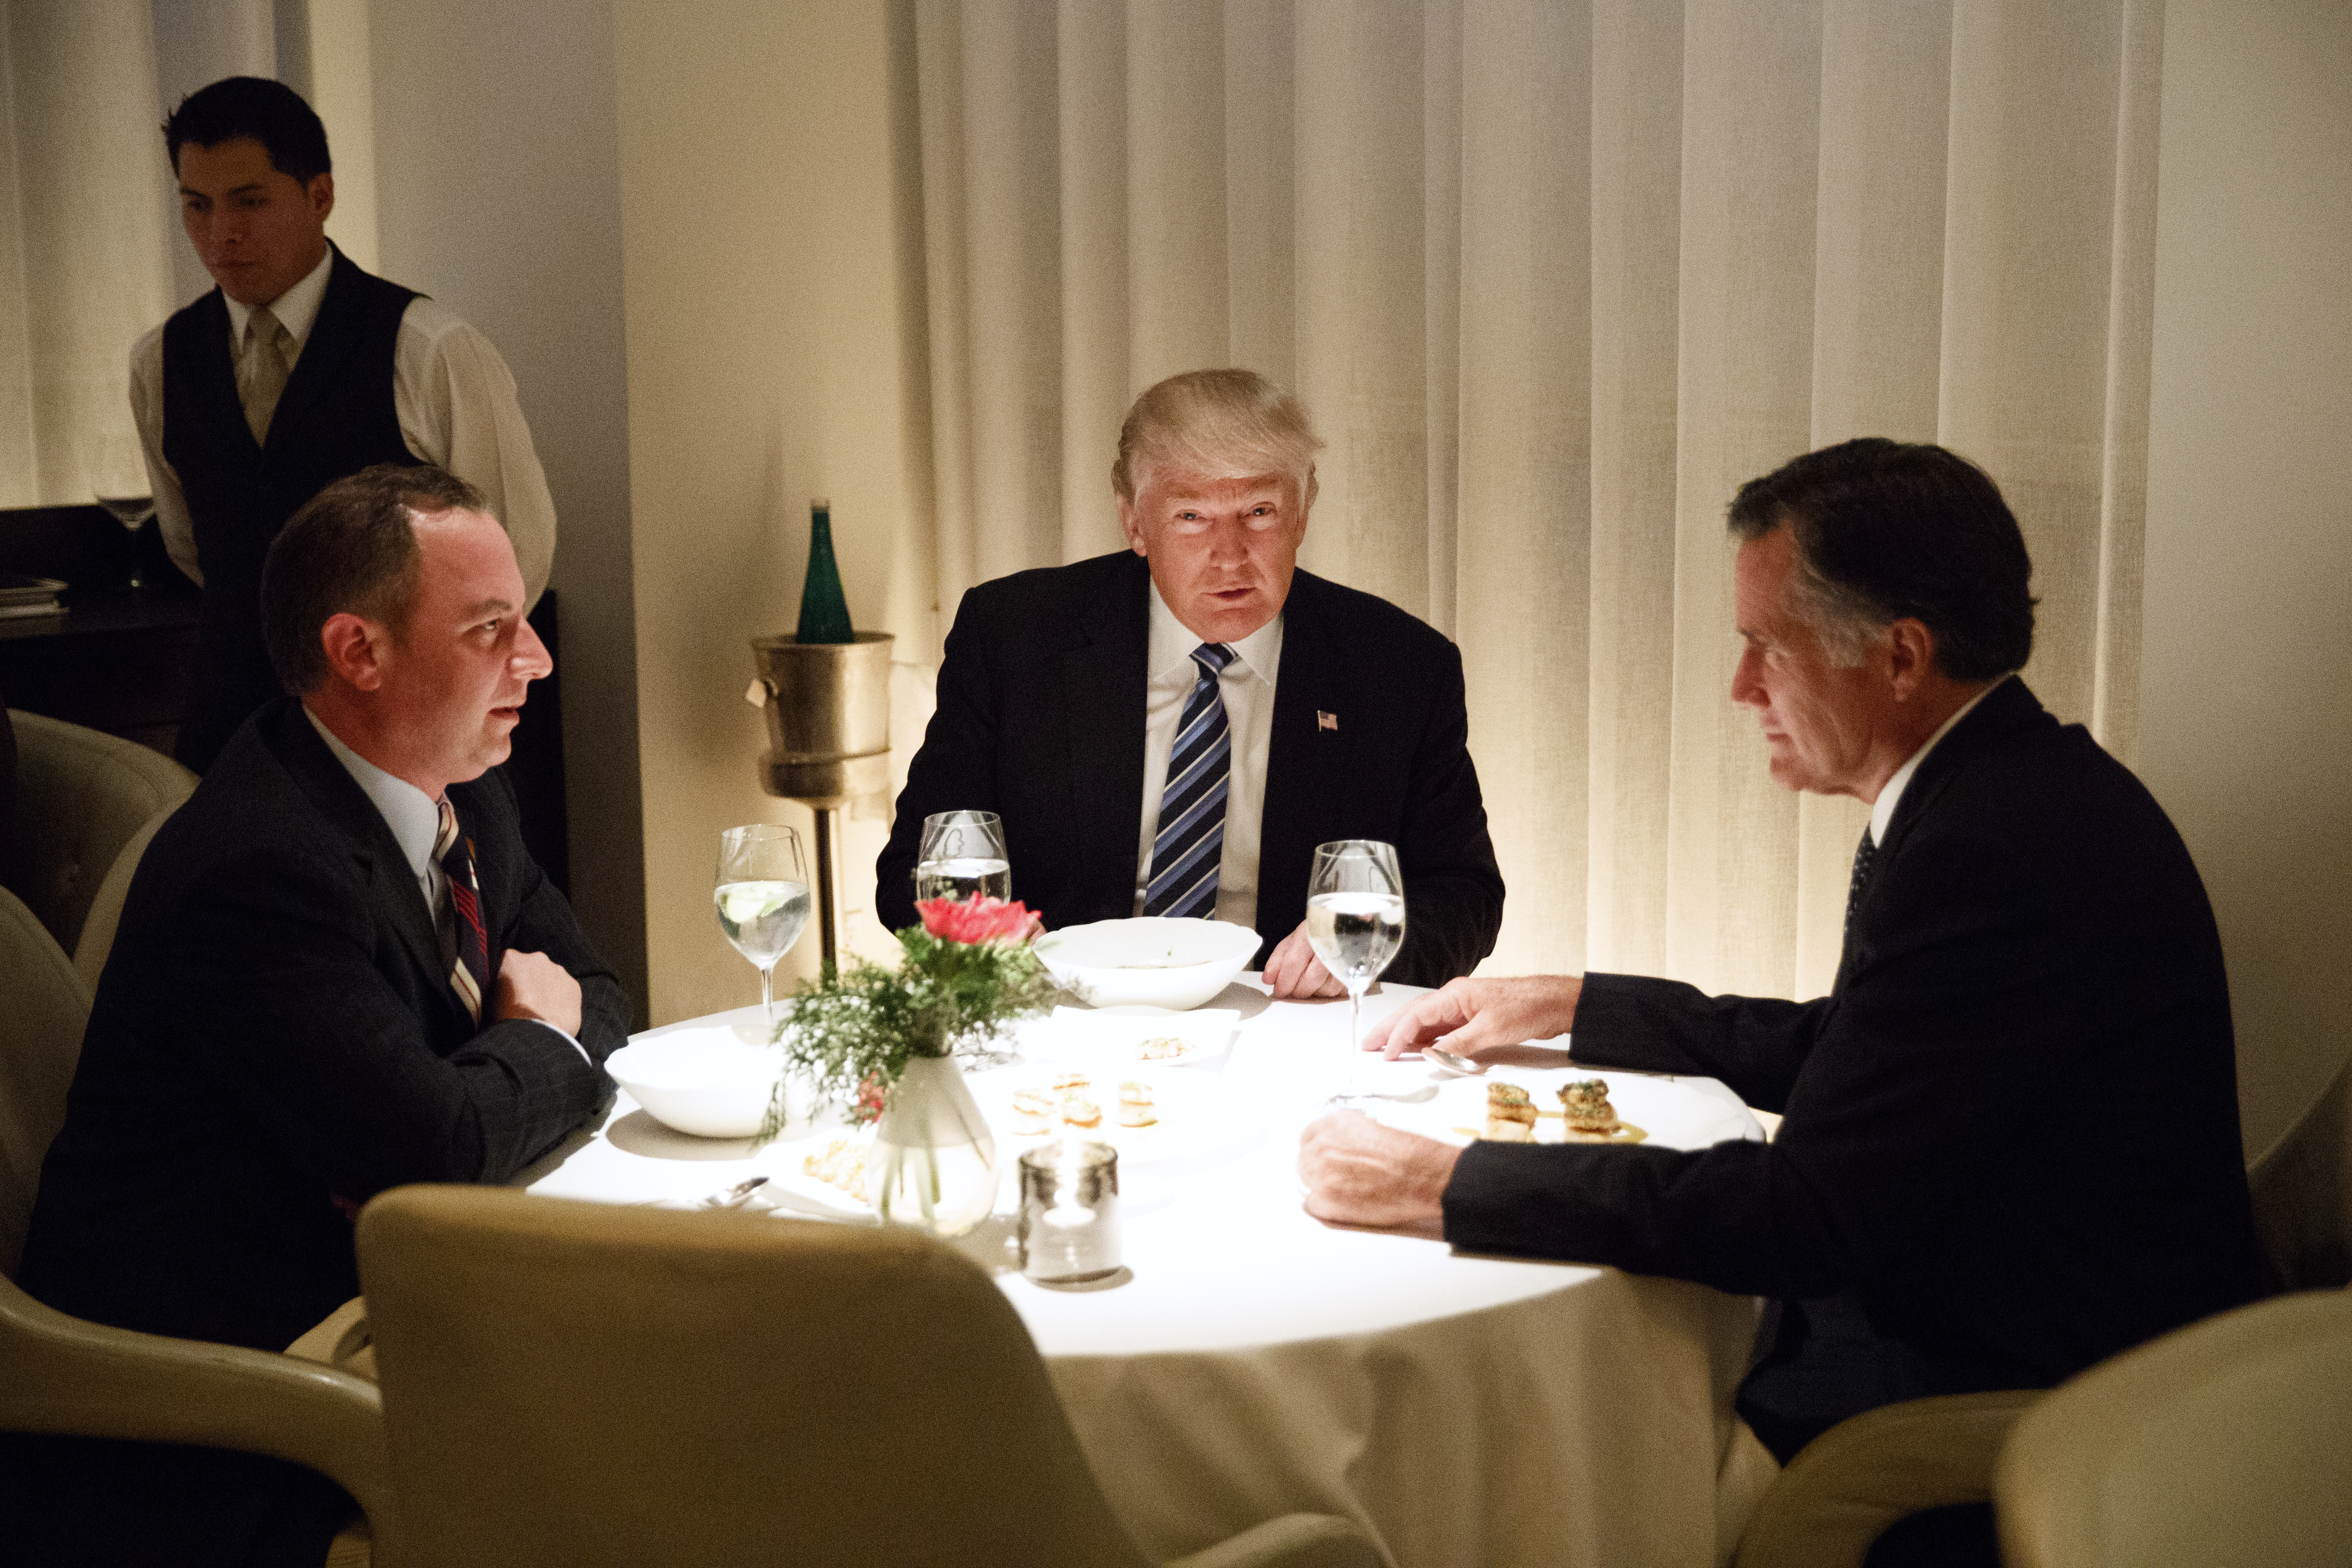 FILE - In this Nov. 29, 2016, file photo, shows President-elect Donald Trump, center, eating dinner with Mitt Romney, right, and Trump Chief of Staff Reince Priebus at Jean-Georges restaurant, in New York. Mitt Romney and President Donald Trump exchanged harsh criticisms of one another during the 2016 presidential campaign but also have a history of being willing to sit down with each other when mutually beneficial. Romney's announcement that he's running for the U.S. Senate seat in Utah creates the potential for future battles, or even deal-making.  (AP Photo/Evan Vucci, File)